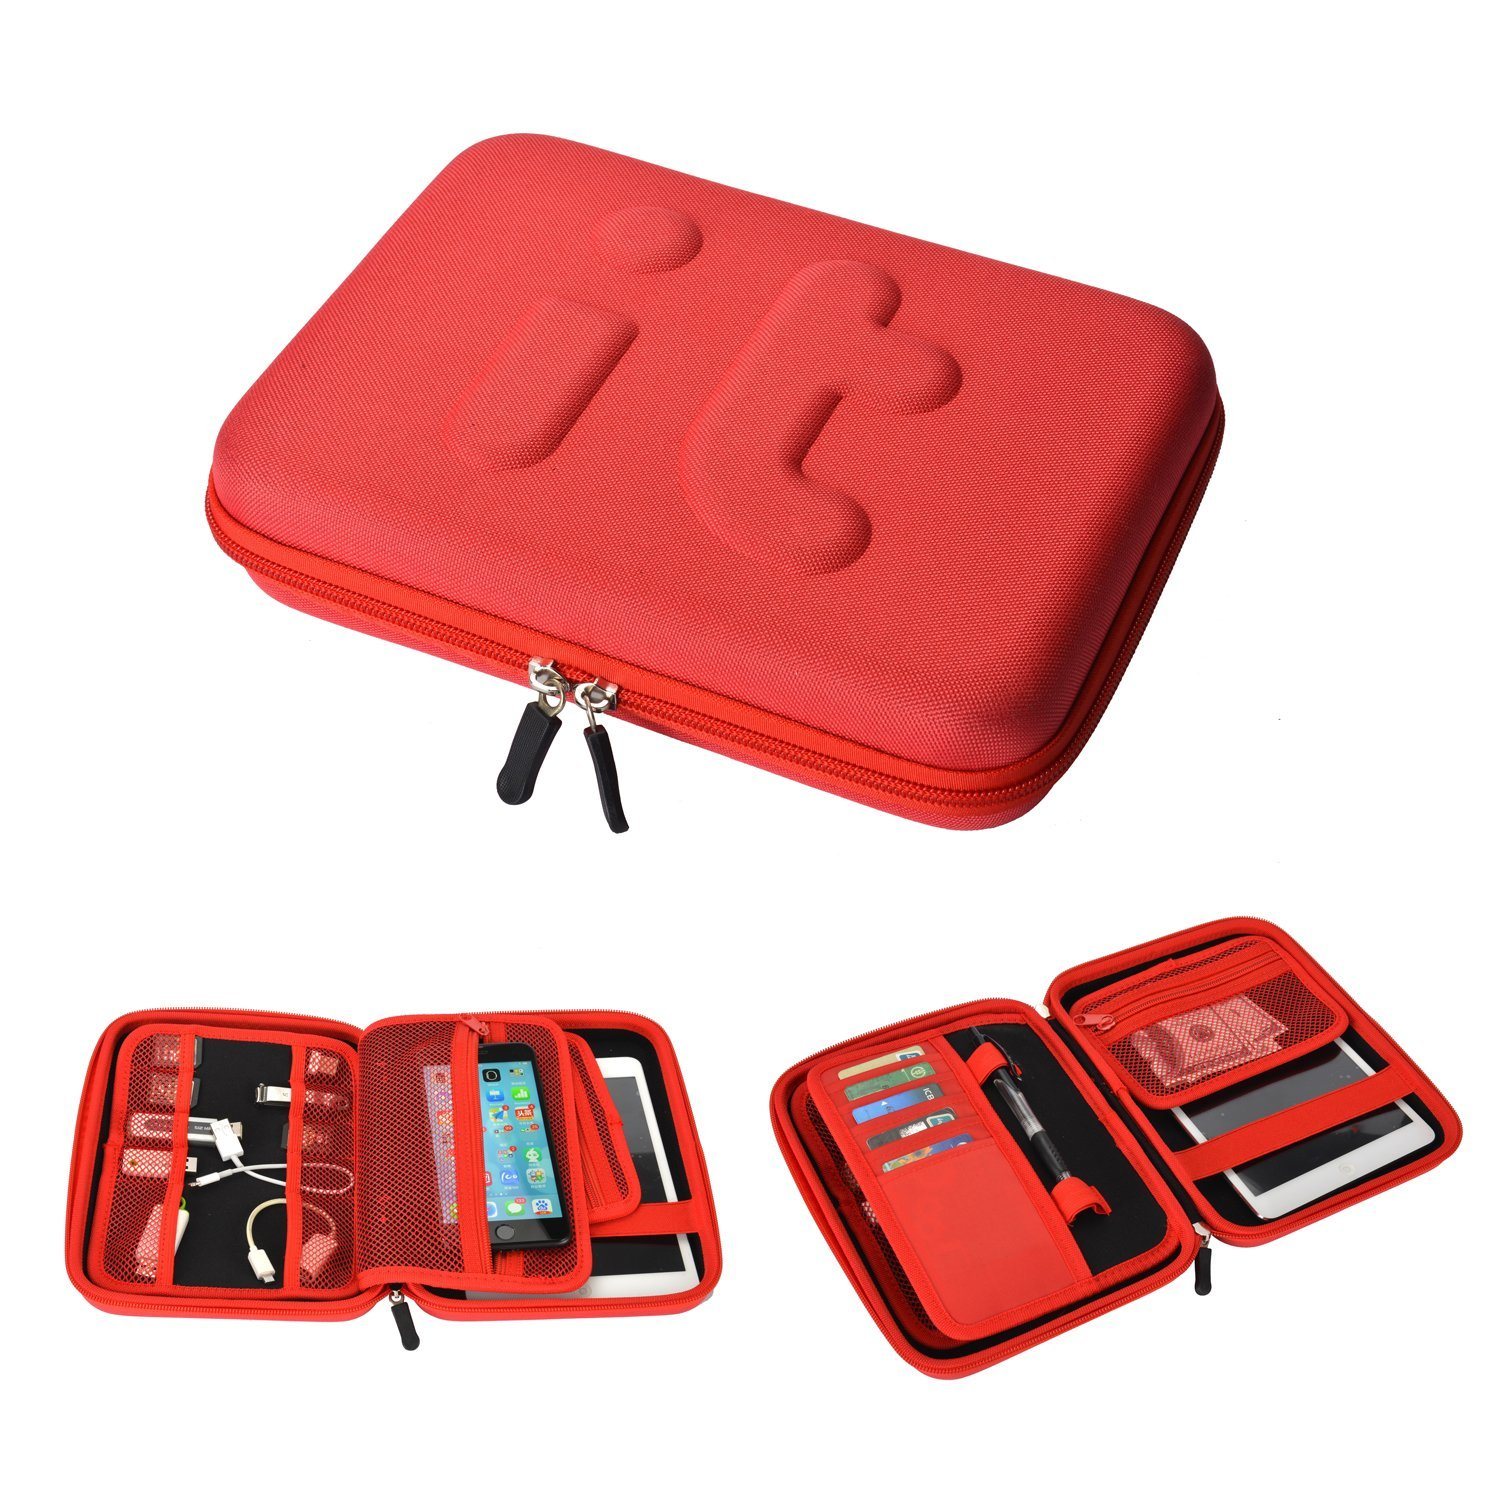 Waterproof Travel Cable Organizer Electronics Accessories Case Organizer Travel Portable Hard Drive Case for iPad Mini, Galaxy Tab, USB Flash Drive, Phone, Charger (Red